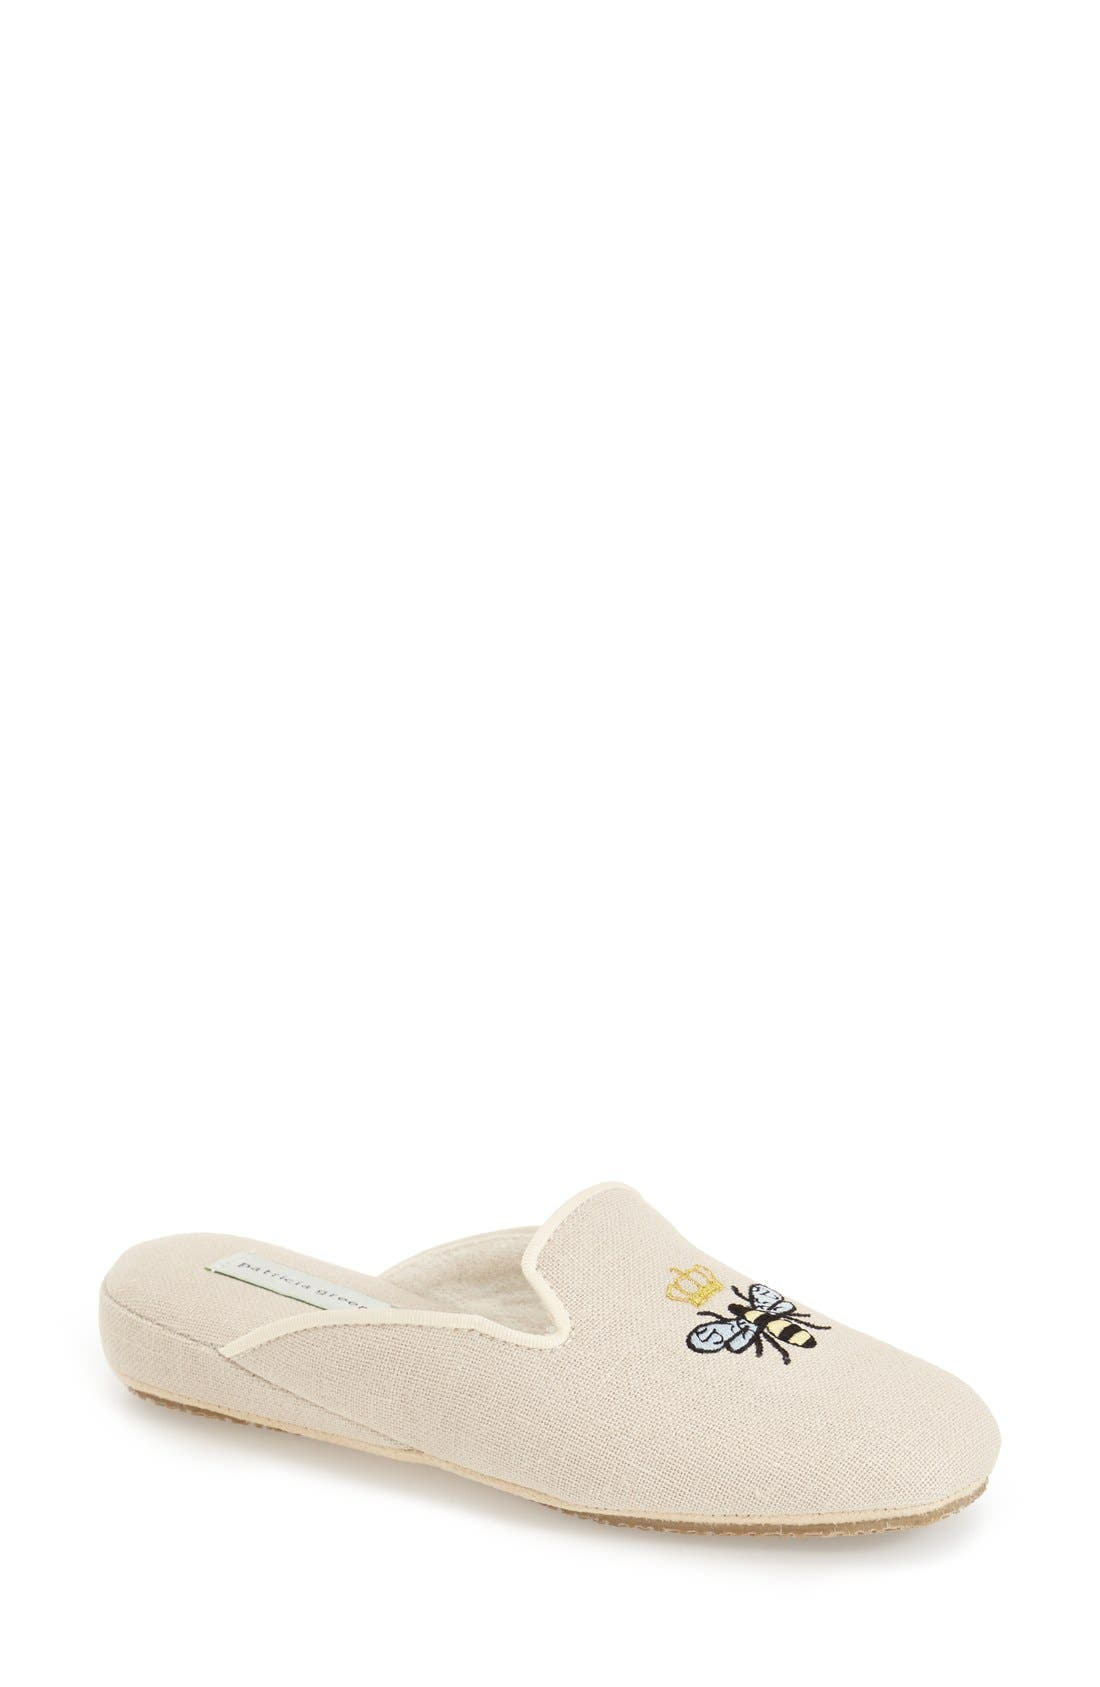 'Queen Bee' Embroidered Slipper,                         Main,                         color, Natural